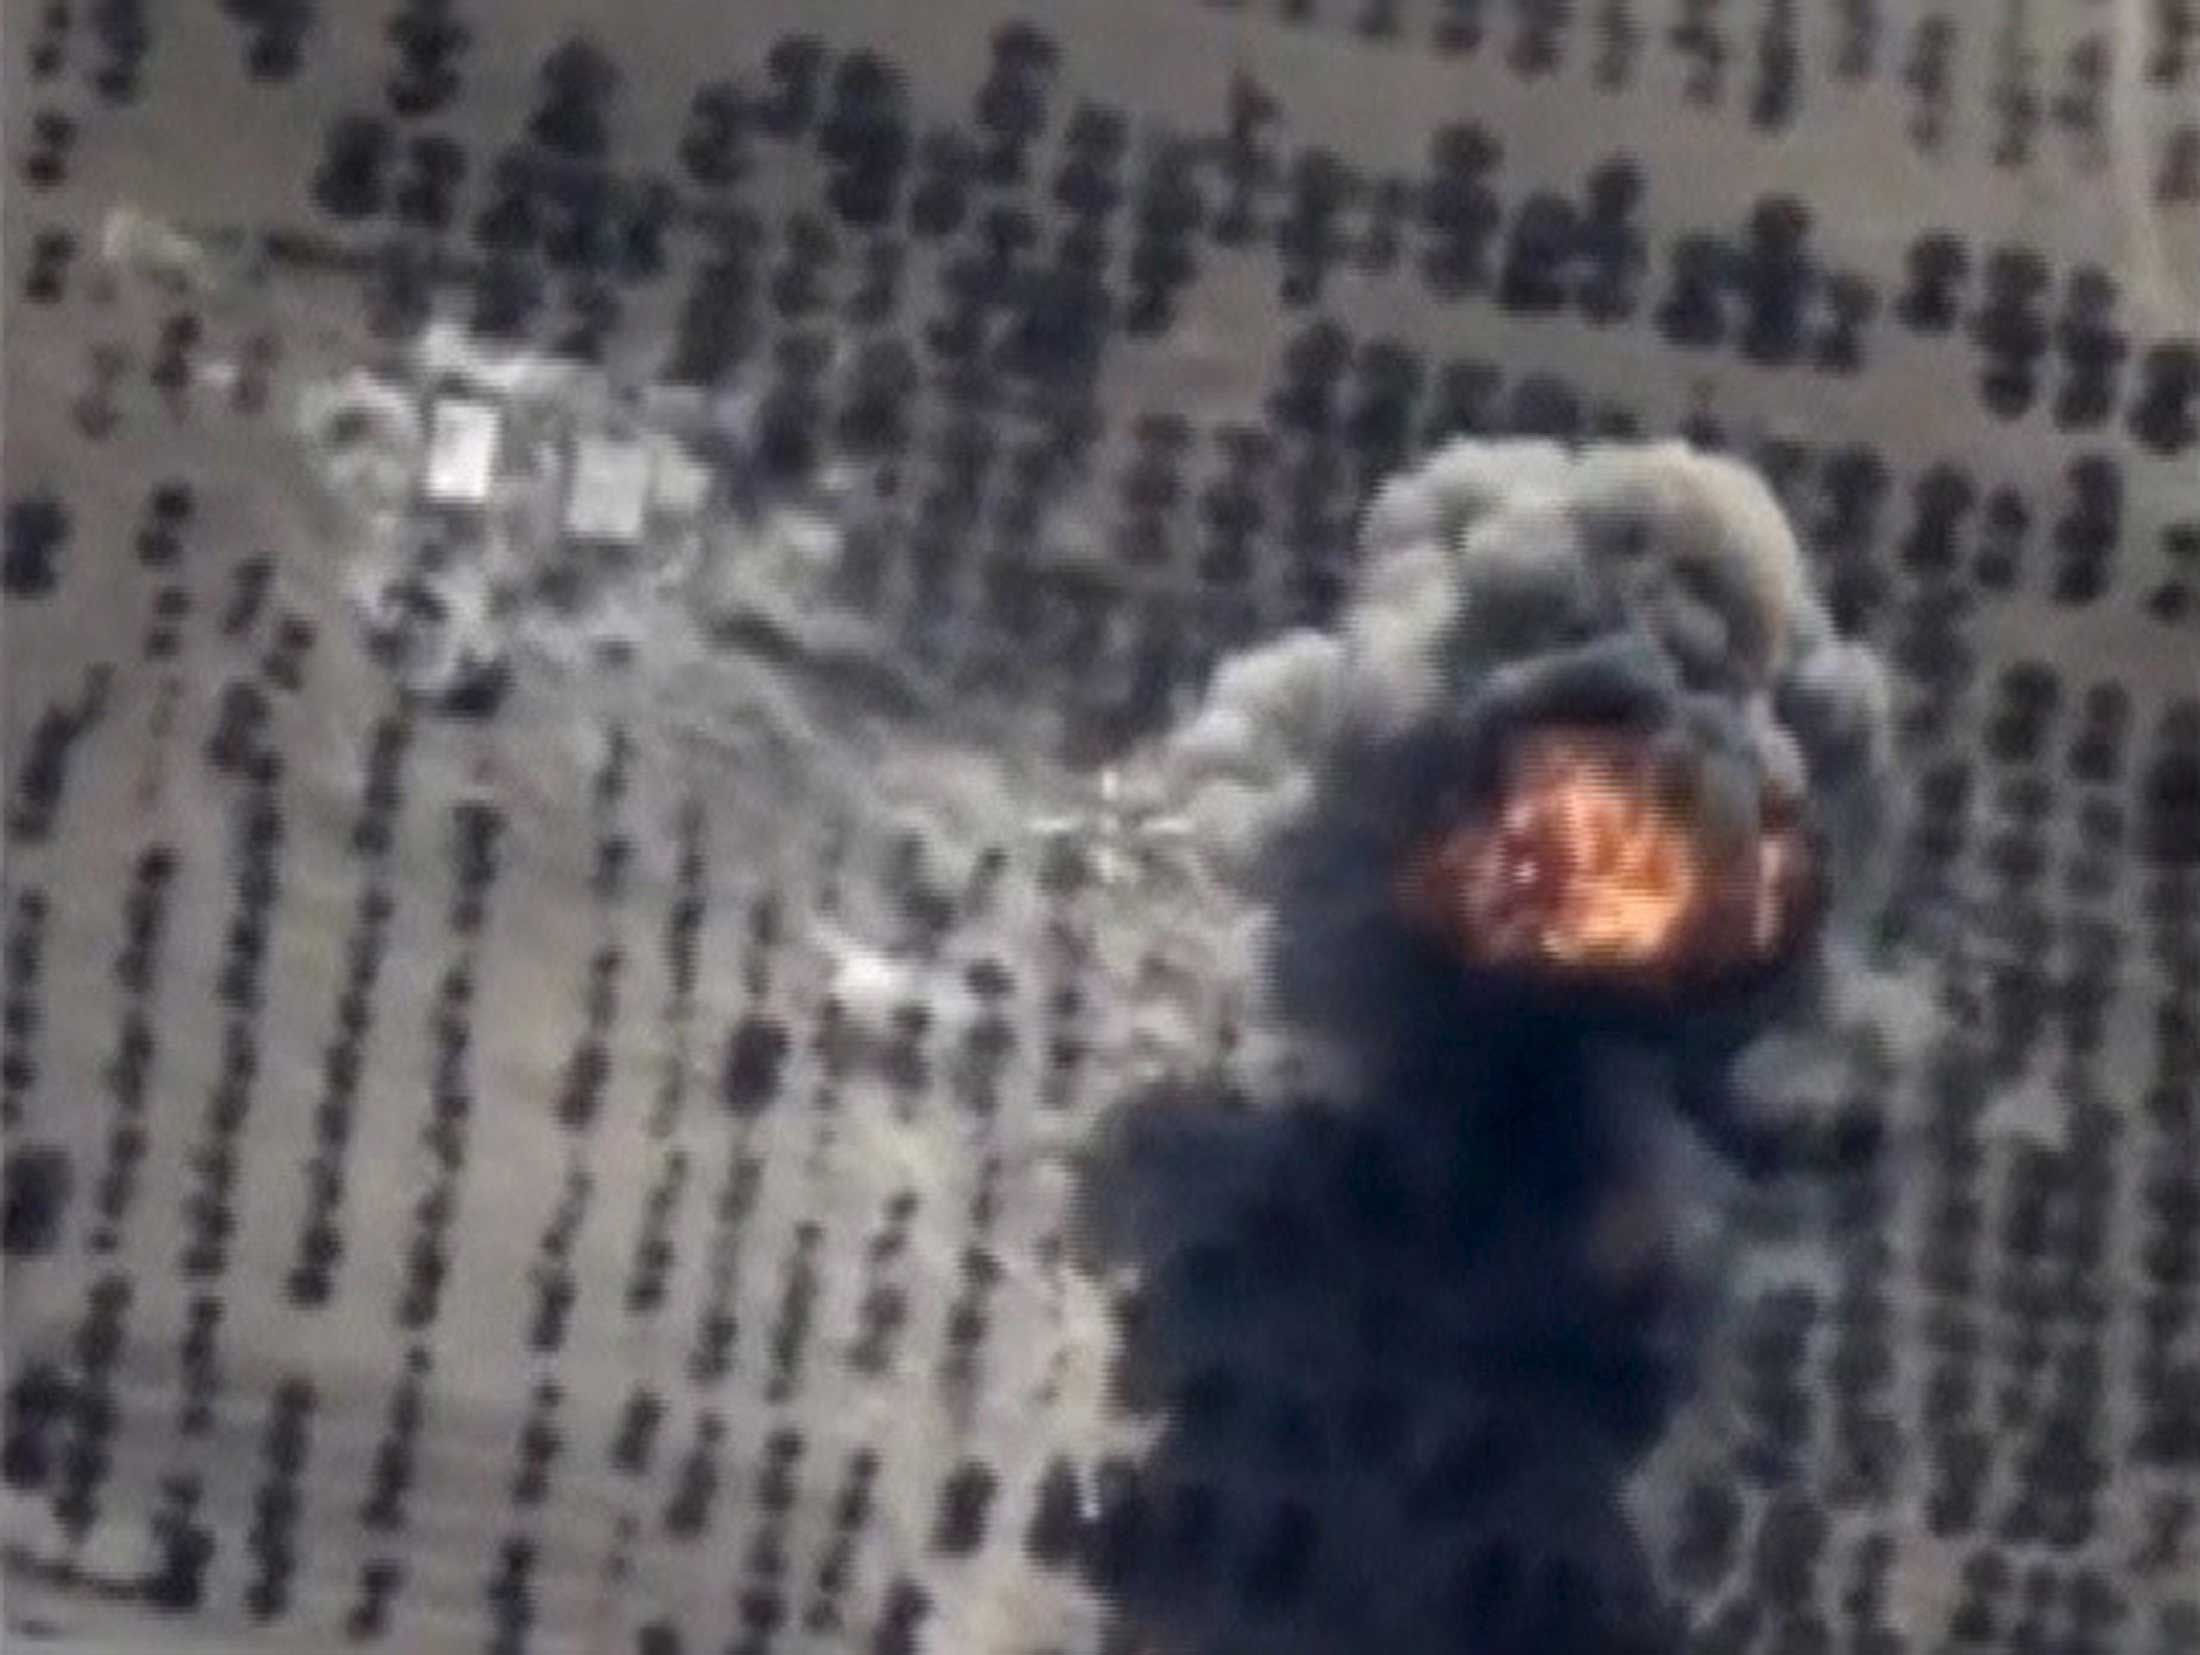 Footage released by Russia's Defence Ministry shows what Russia says is an explosion after airstrikes carried out by the Russian air force on an Islamic State armored vehicles revetment and fuel depot in Idlib province, Syria, on Oct.15, 2015.